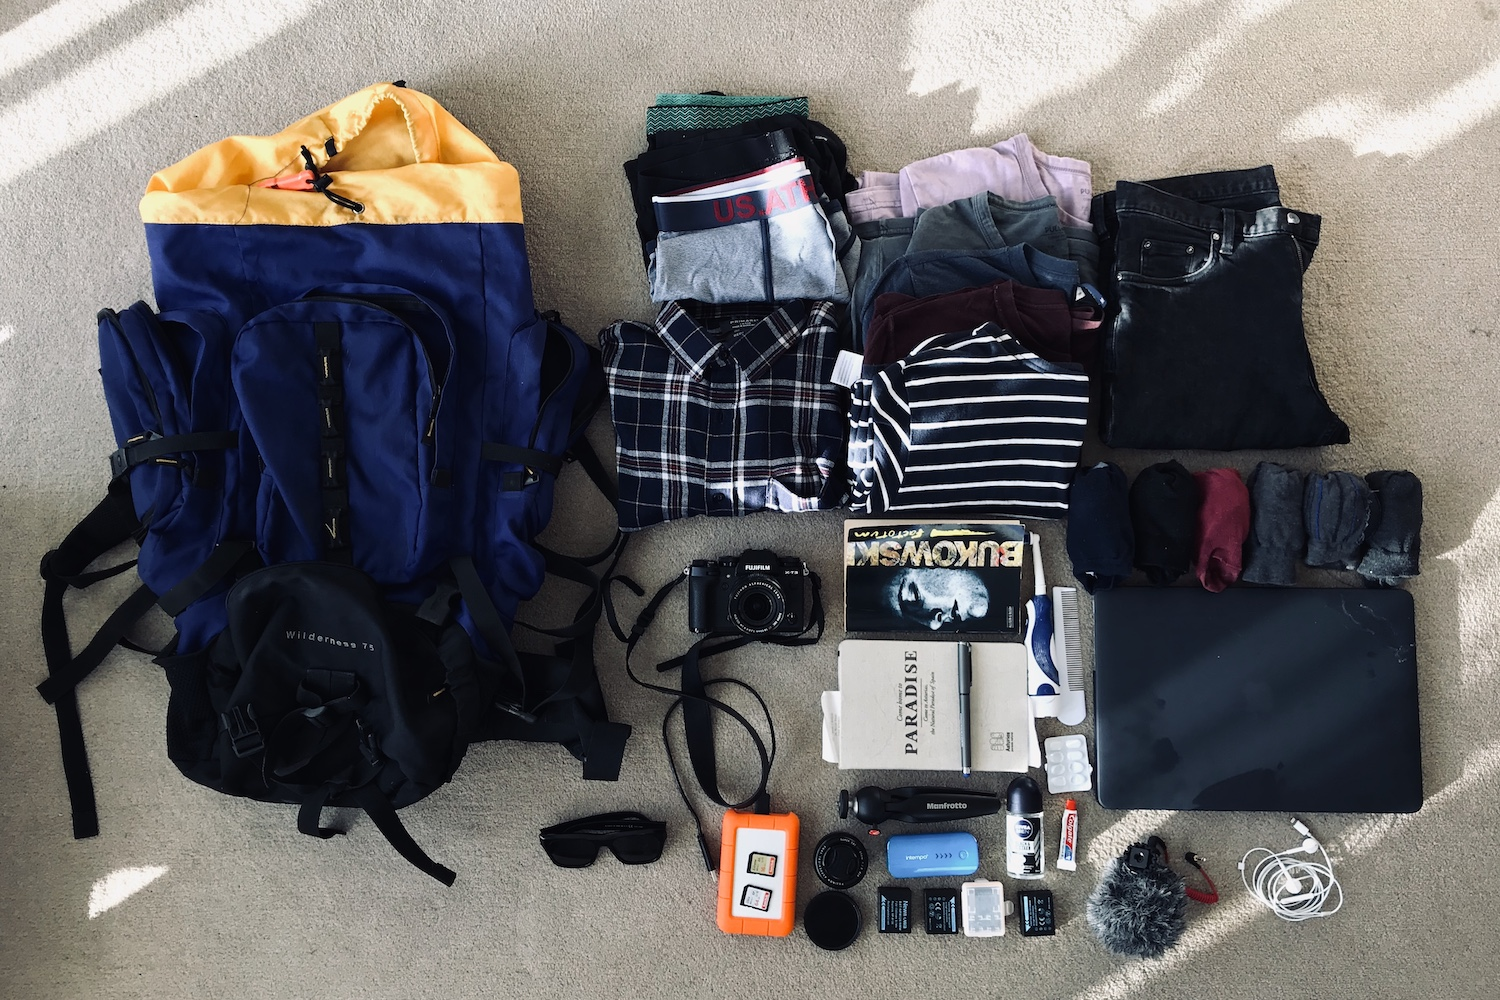 Minimalist Travel Packing List (One-Bag Carry-On-Only) - By Ben Holbrook from DriftwoodJournals.com